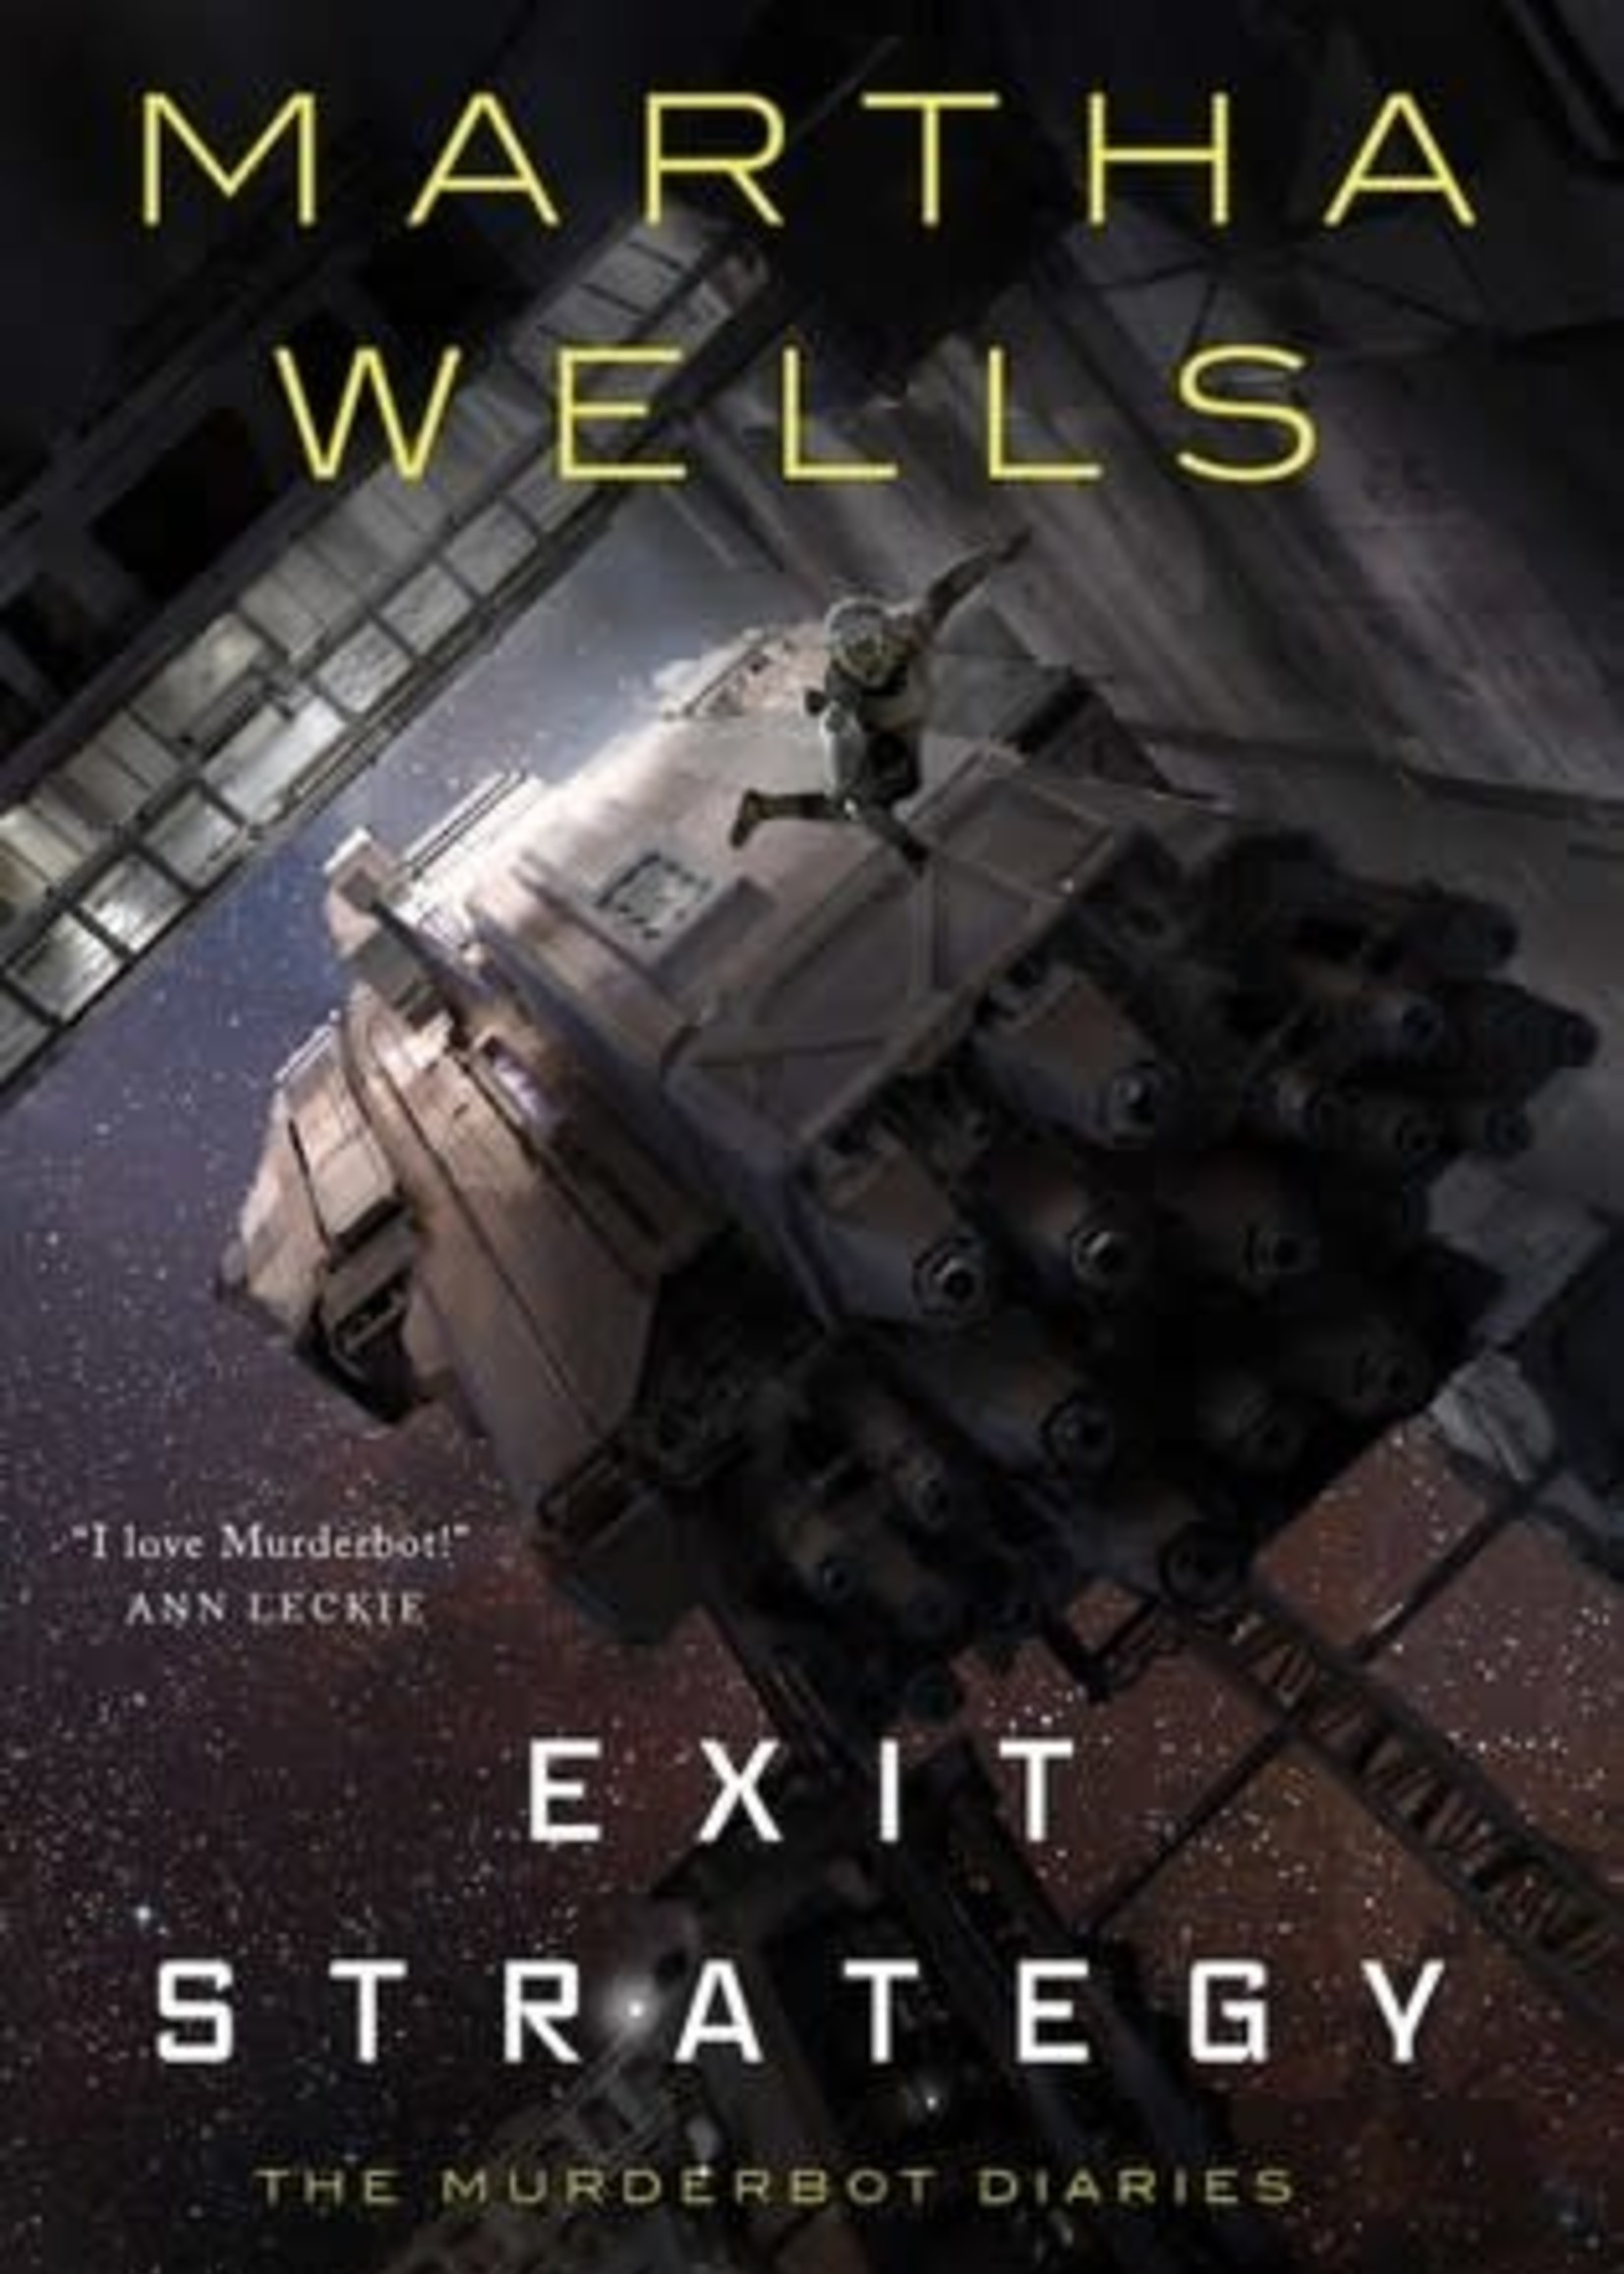 Exit Strategy by March Wells